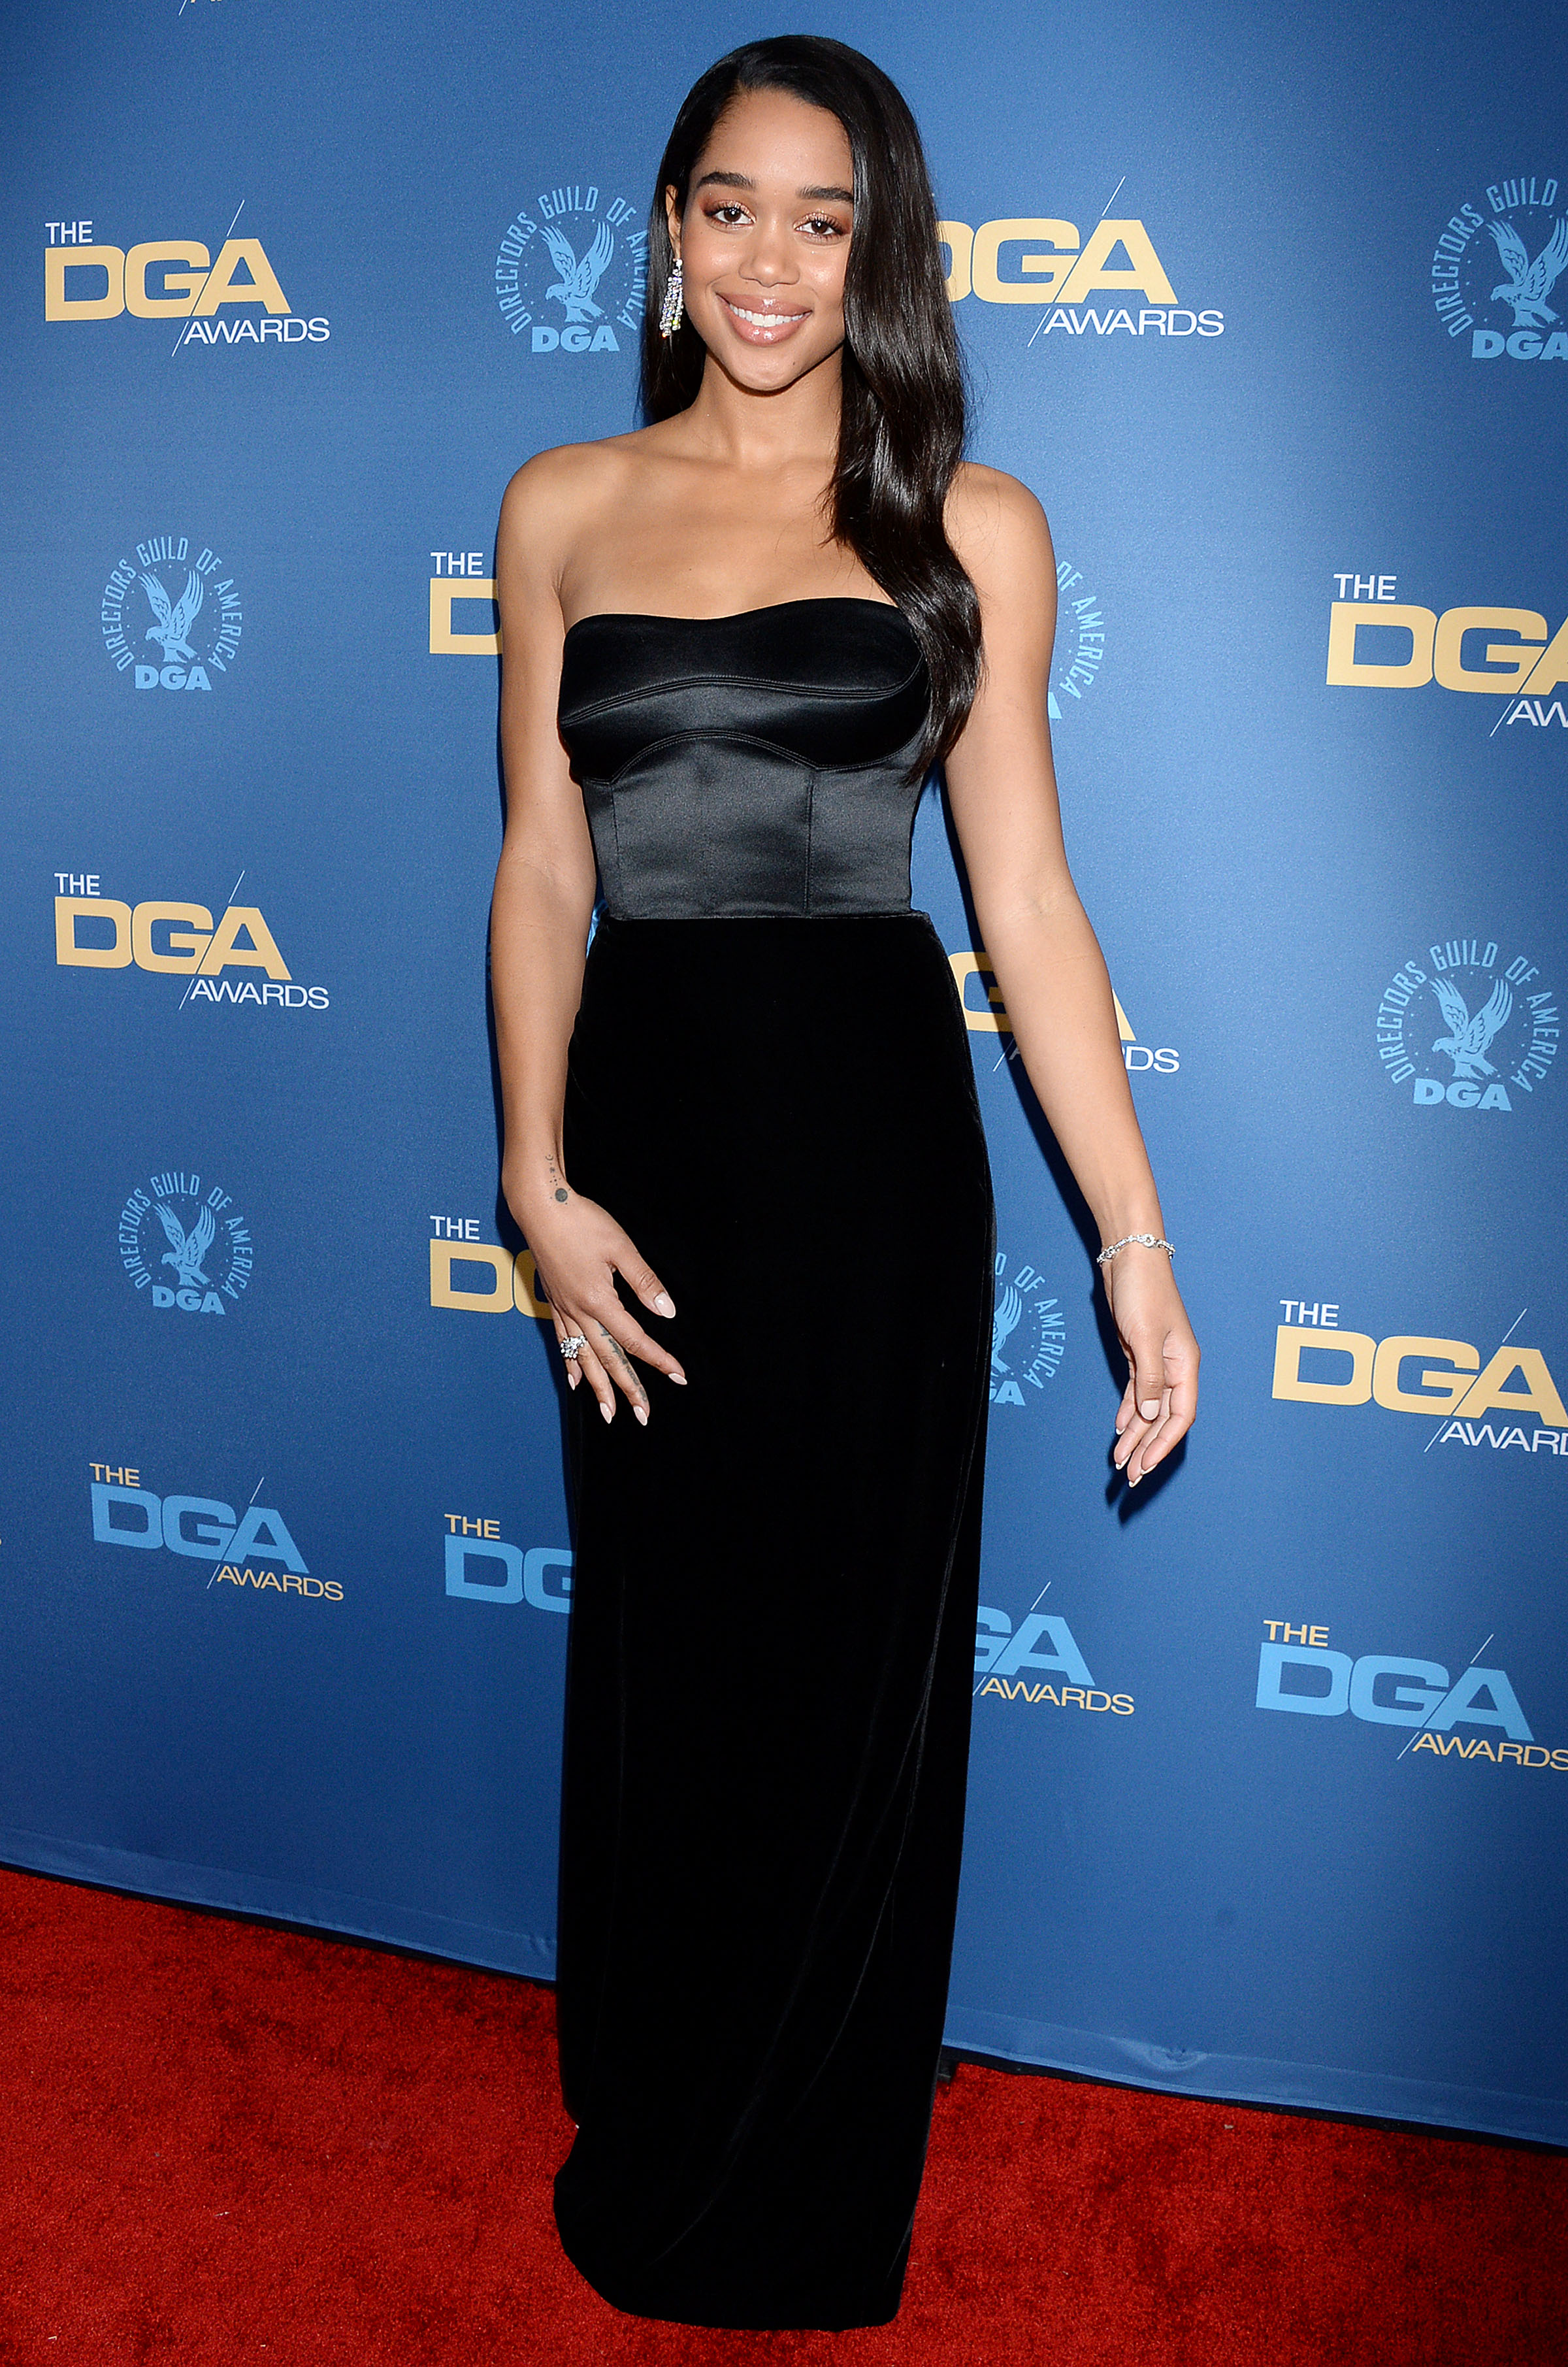 Laura Harrier71st Annual Directors Guild of America Awards, Los Angeles, USA - 02 Feb 2019 Wearing Brandon Maxwell